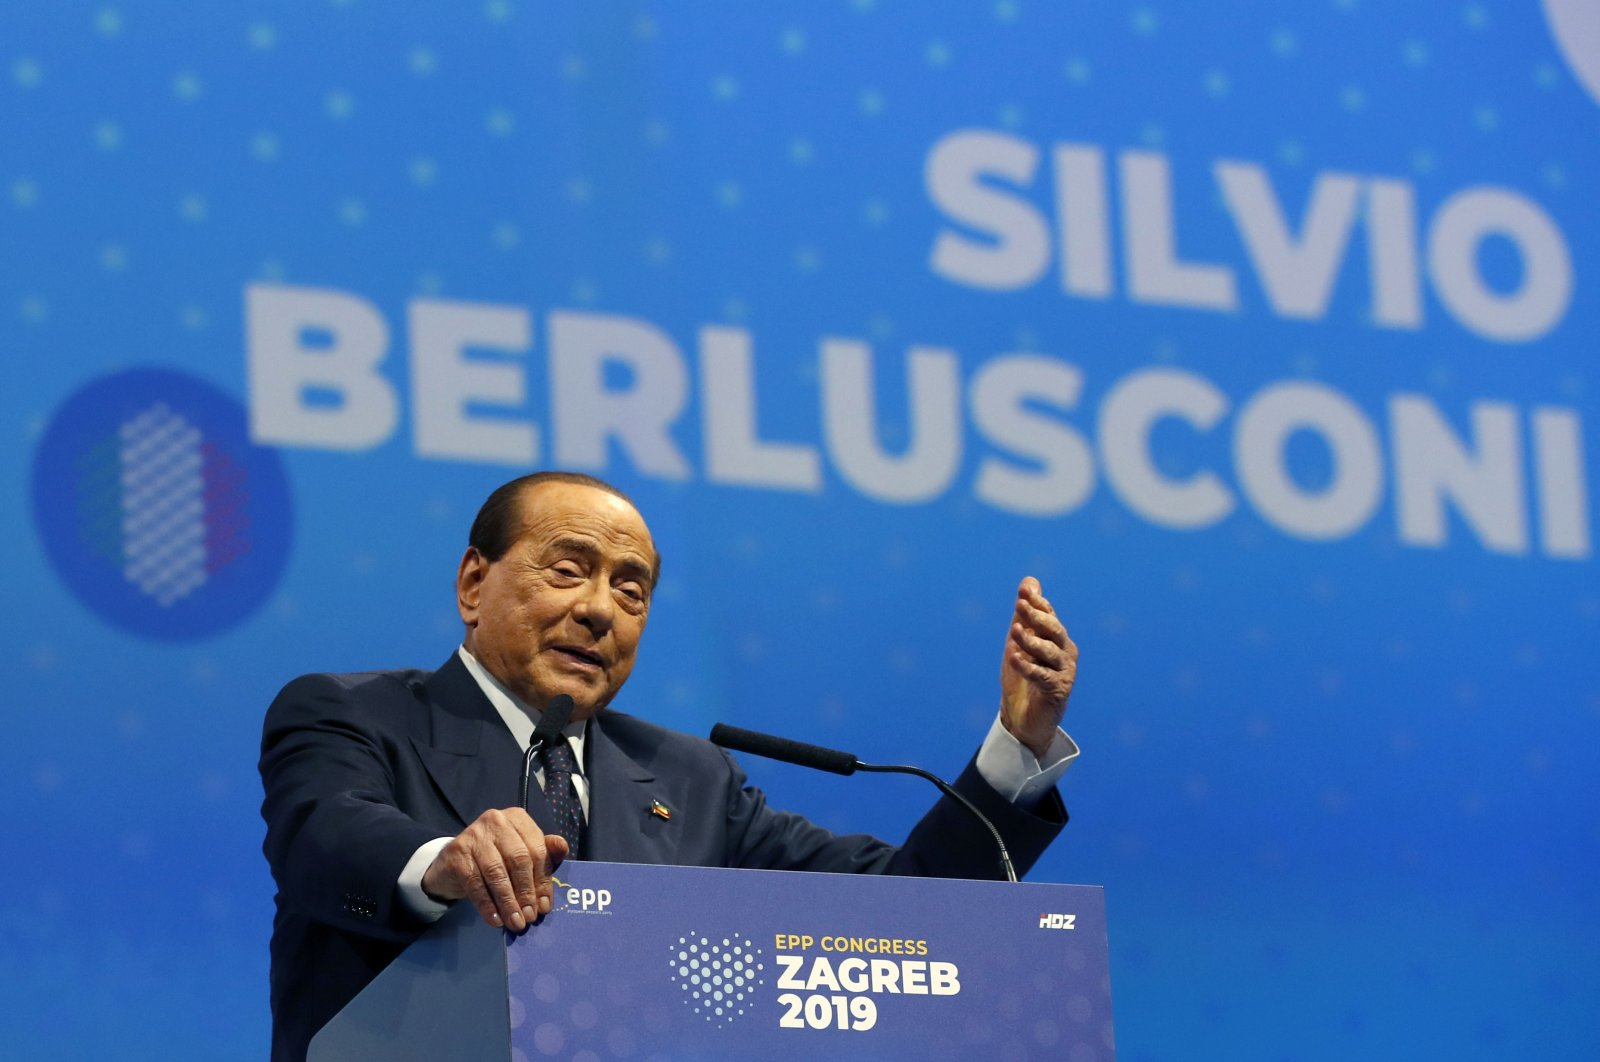 In this file photo, Silvio Berlusconi, Italian former prime minister and president of Forza Italia (Go Italy) party, speaks during the European Peoples Party (EPP) congress in Zagreb, Croatia, Nov. 21, 2019. (AP Photo)